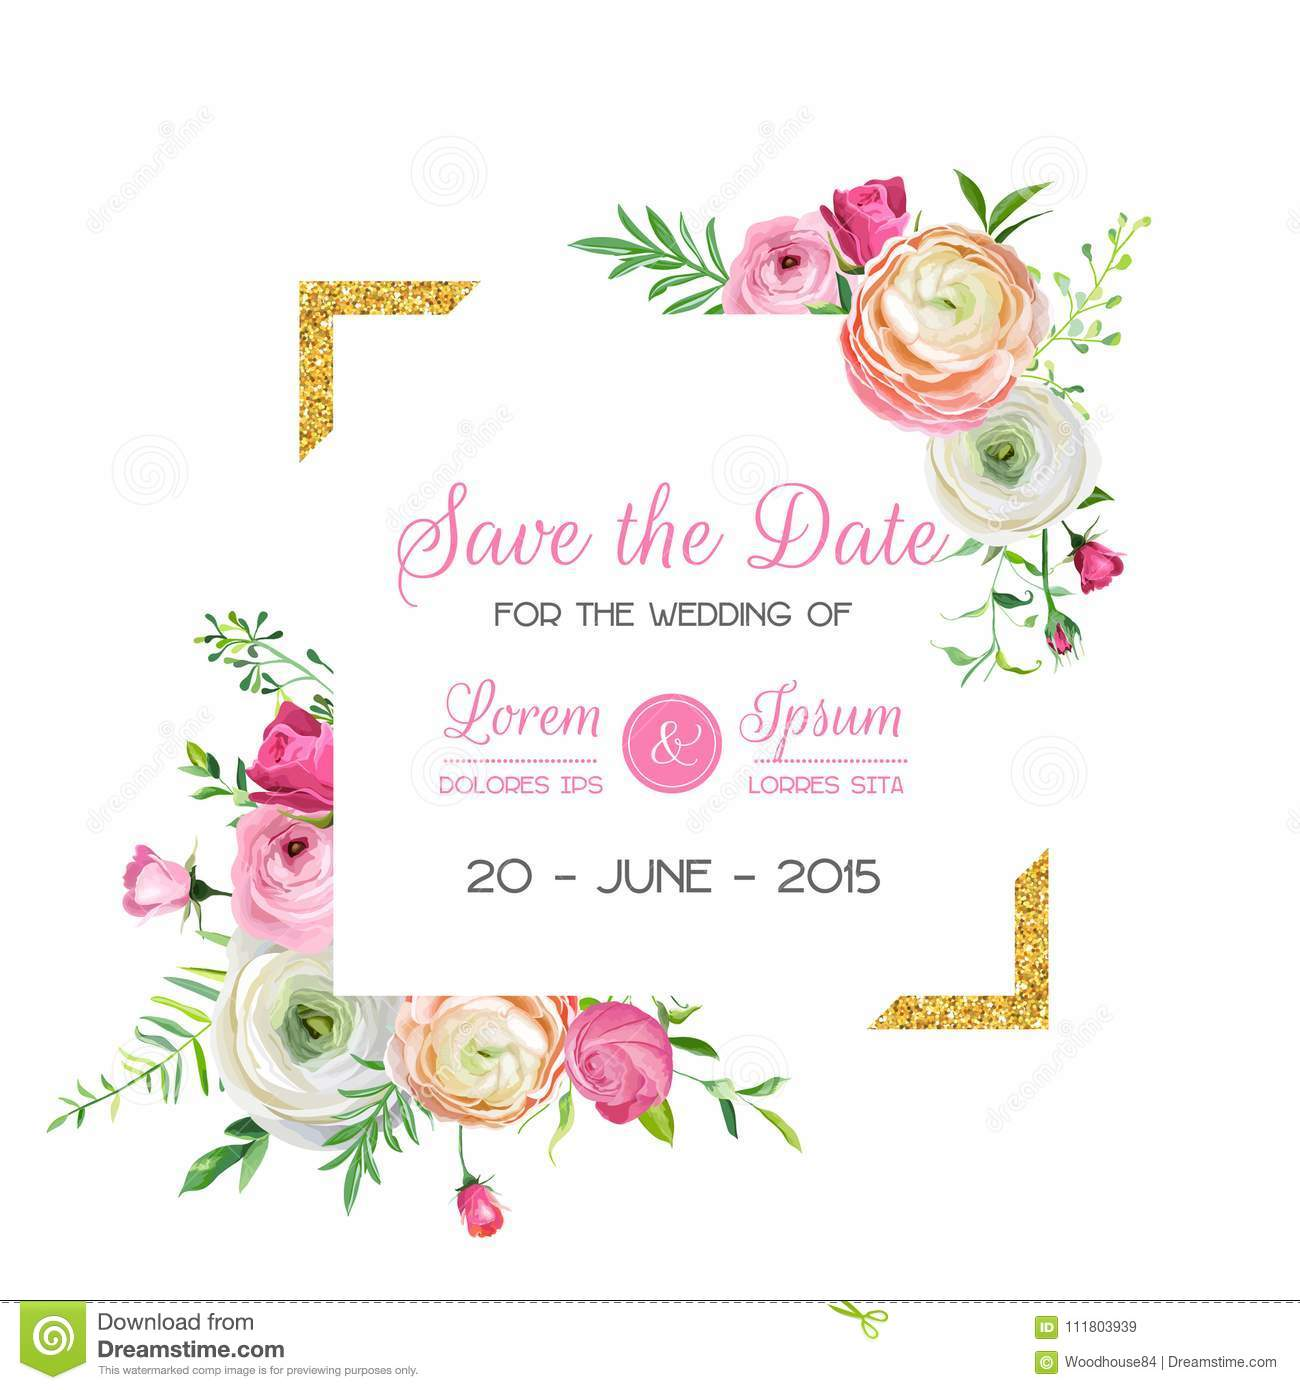 save the date card template with golden glitter frame and flowers wedding invitation greeting